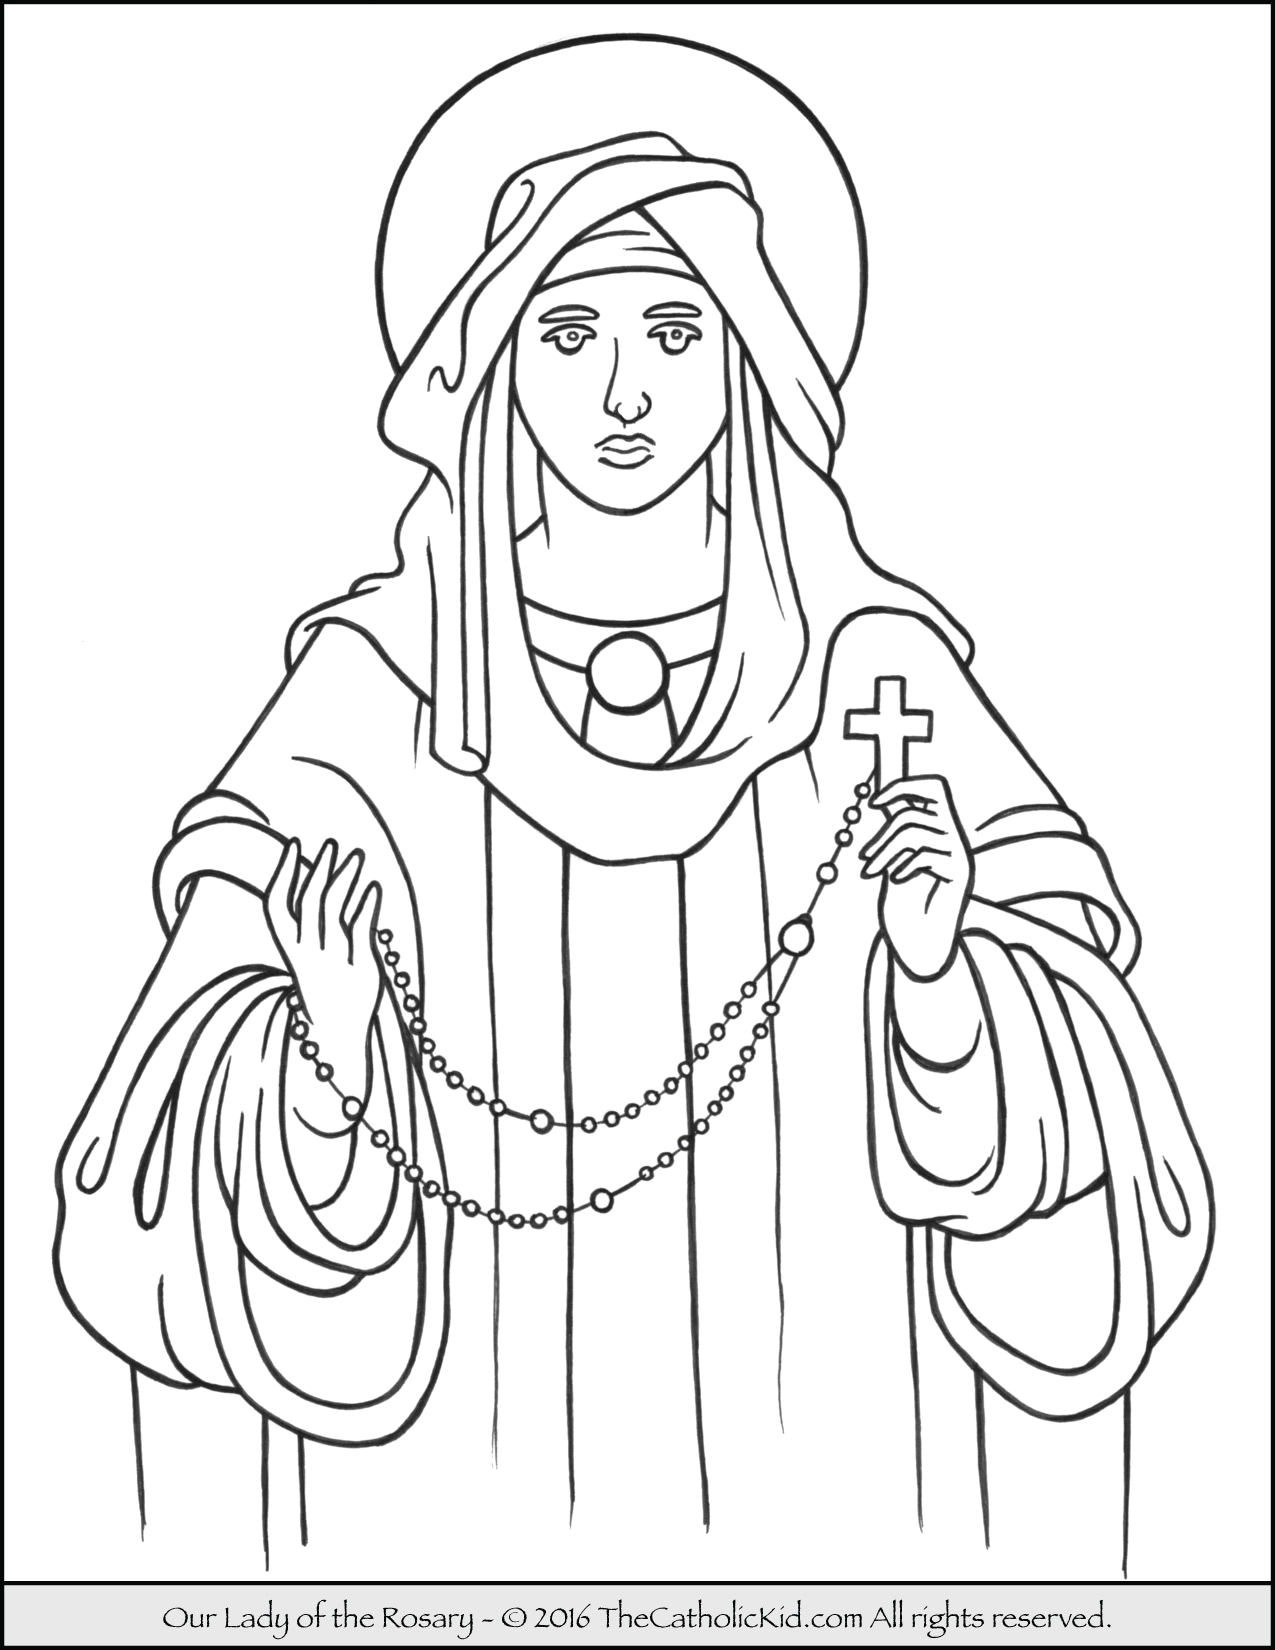 Our Lady Of the Rosary Coloring Page Our Lady Of the Rosary Coloring Page thecatholickid